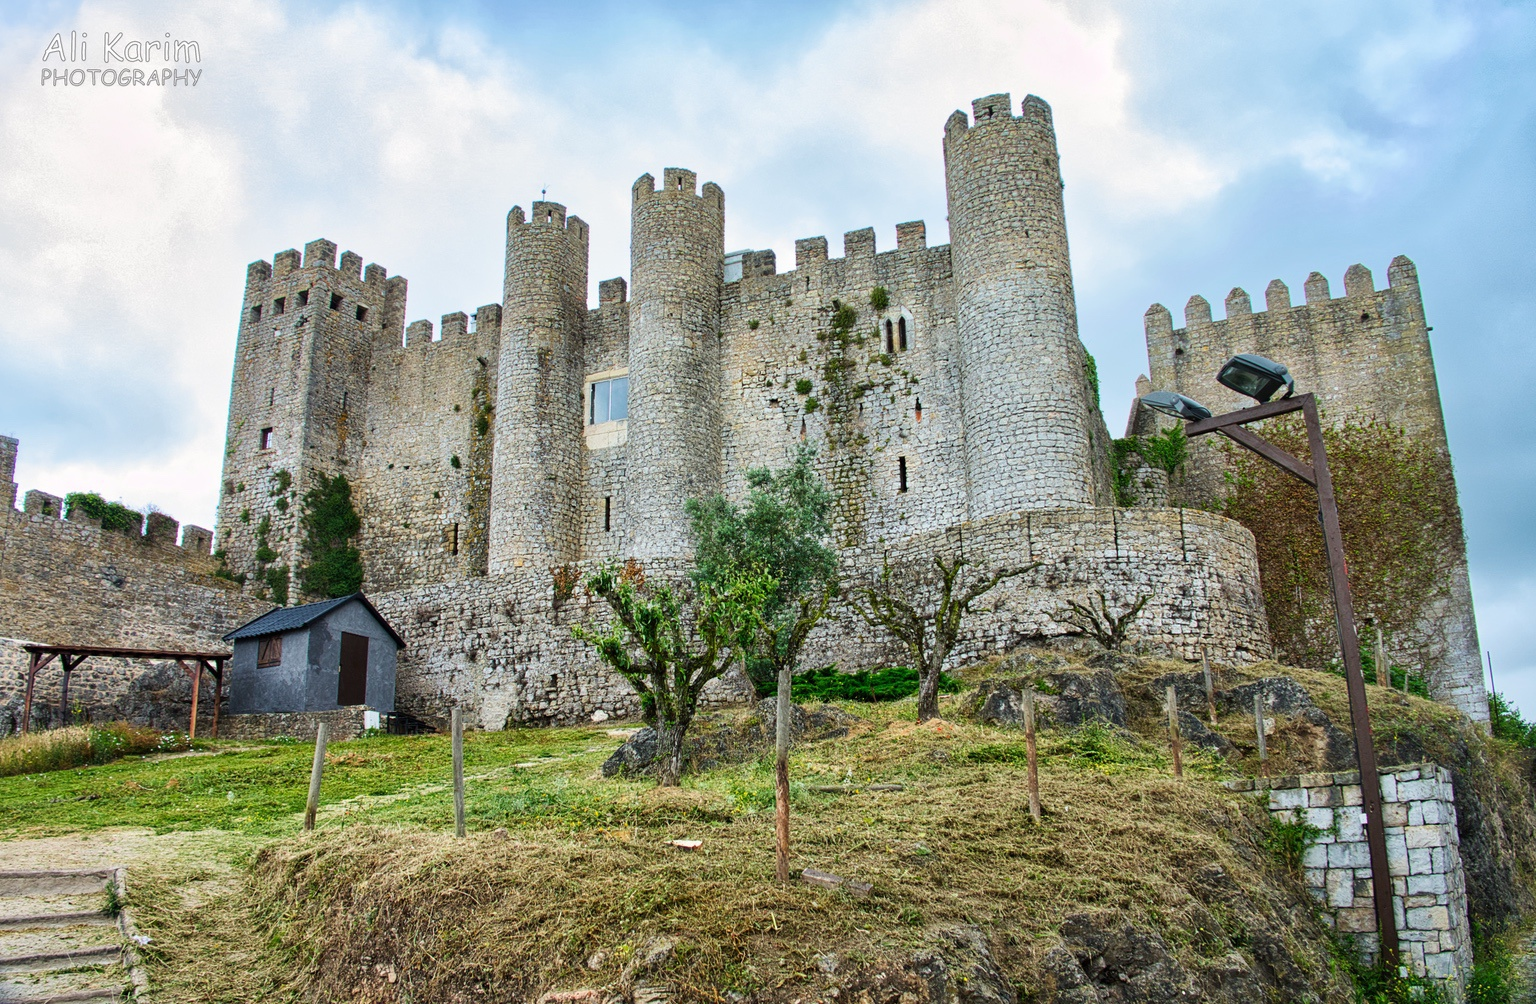 West of Lisbon Seems like a well preserved castle in Obidos, but we could not find any entry point